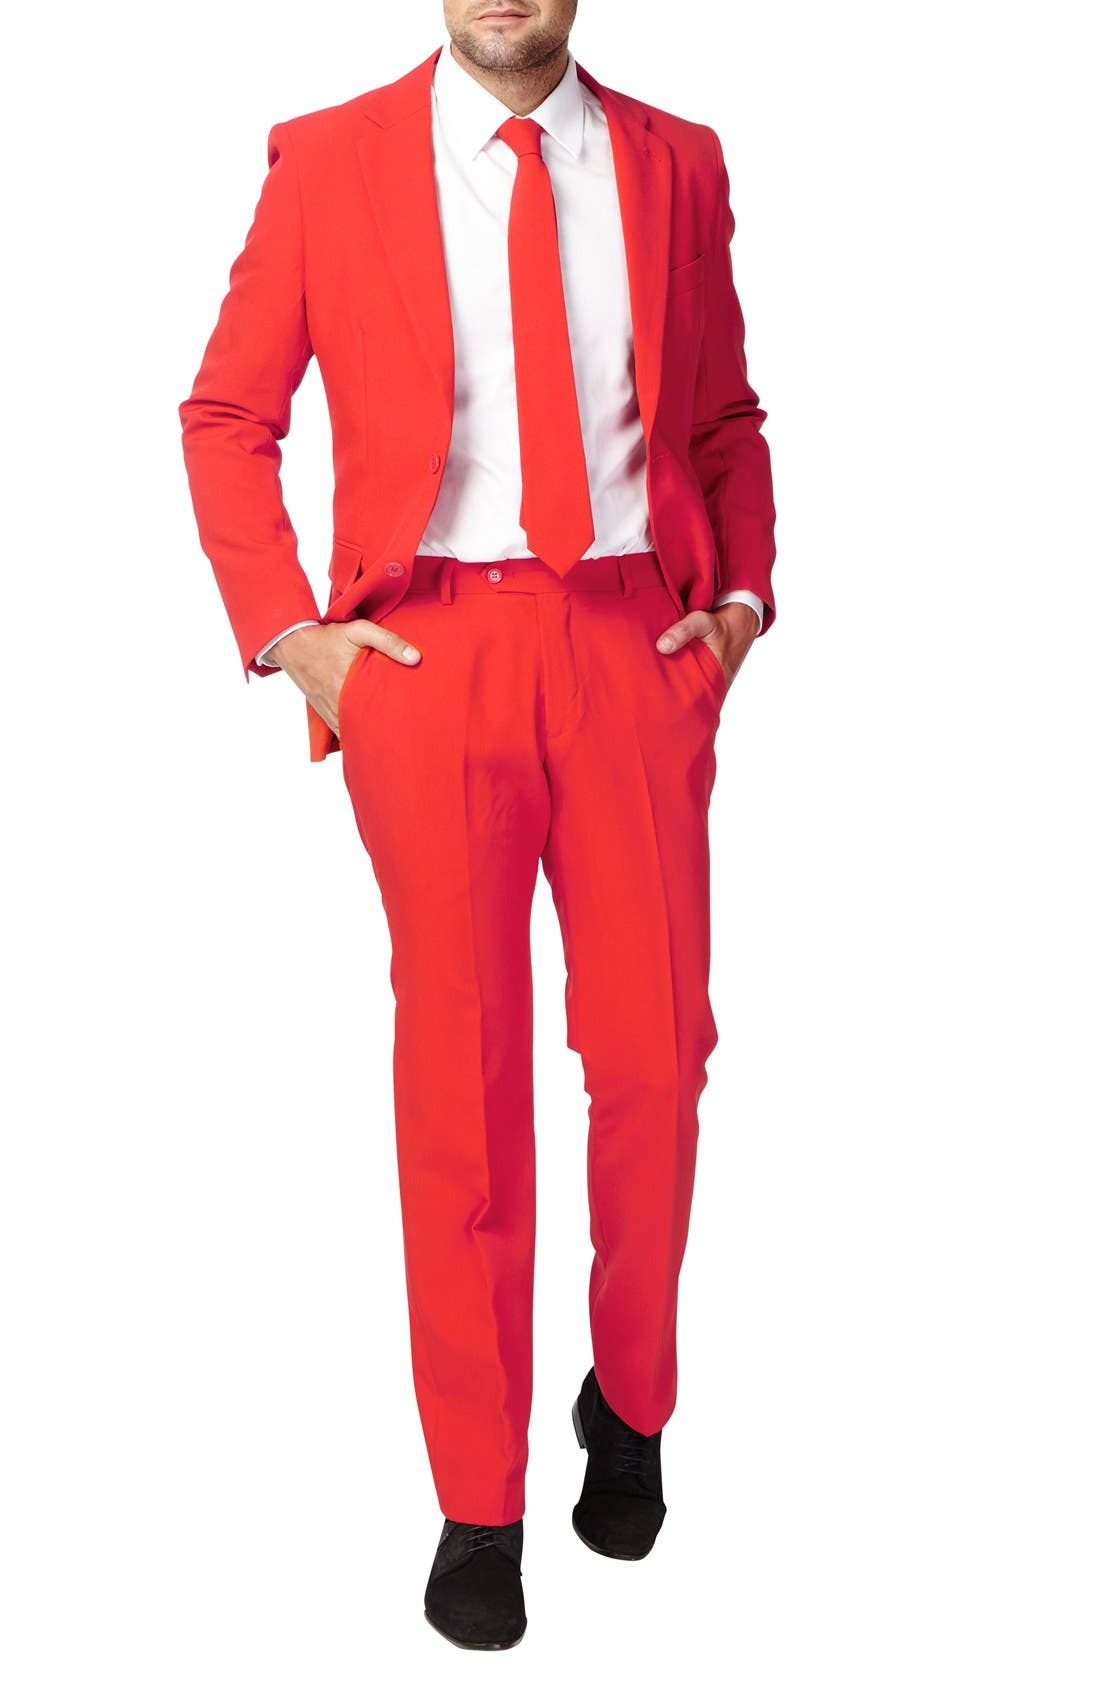 Alternate Image 1 Selected - OppoSuit 'Red Devil' Trim Fit Two-Piece Suit with Tie